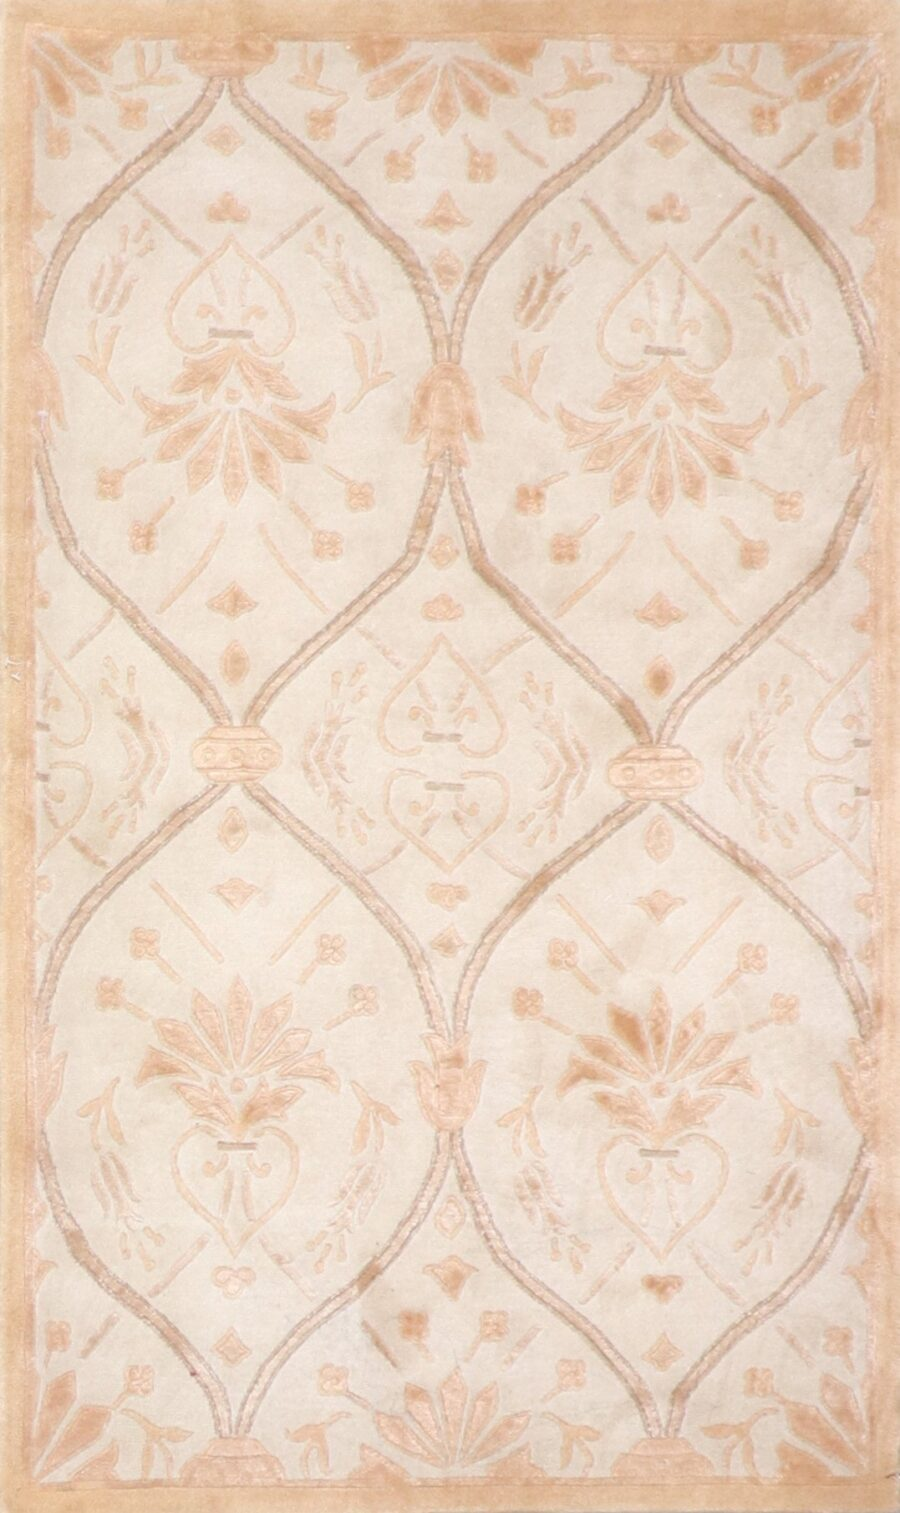 """3'x5'1"""" Transitional Gold and Tan Overall Wool & Silk Hand-Knotted Rug - Direct Rug Import 